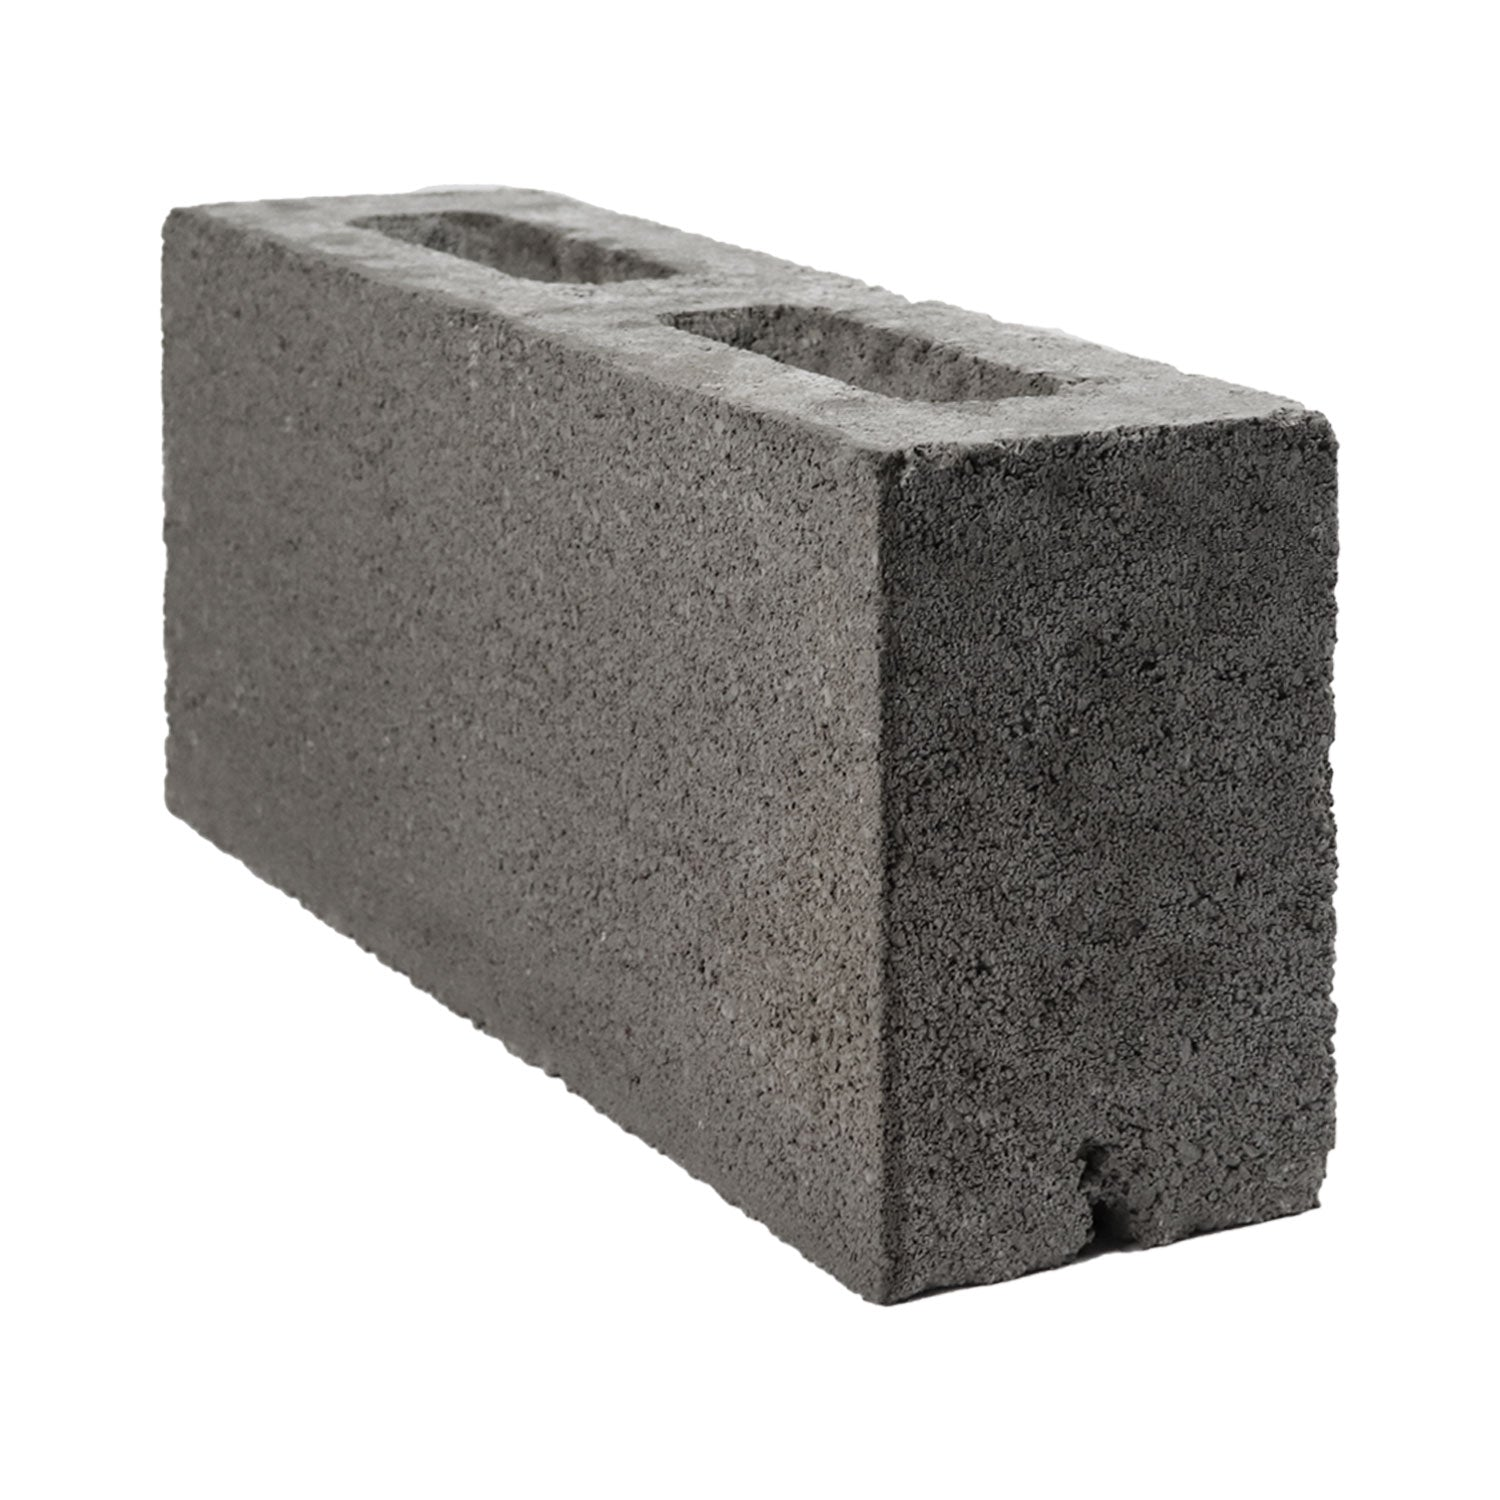 Concrete Hollow Block 140mm